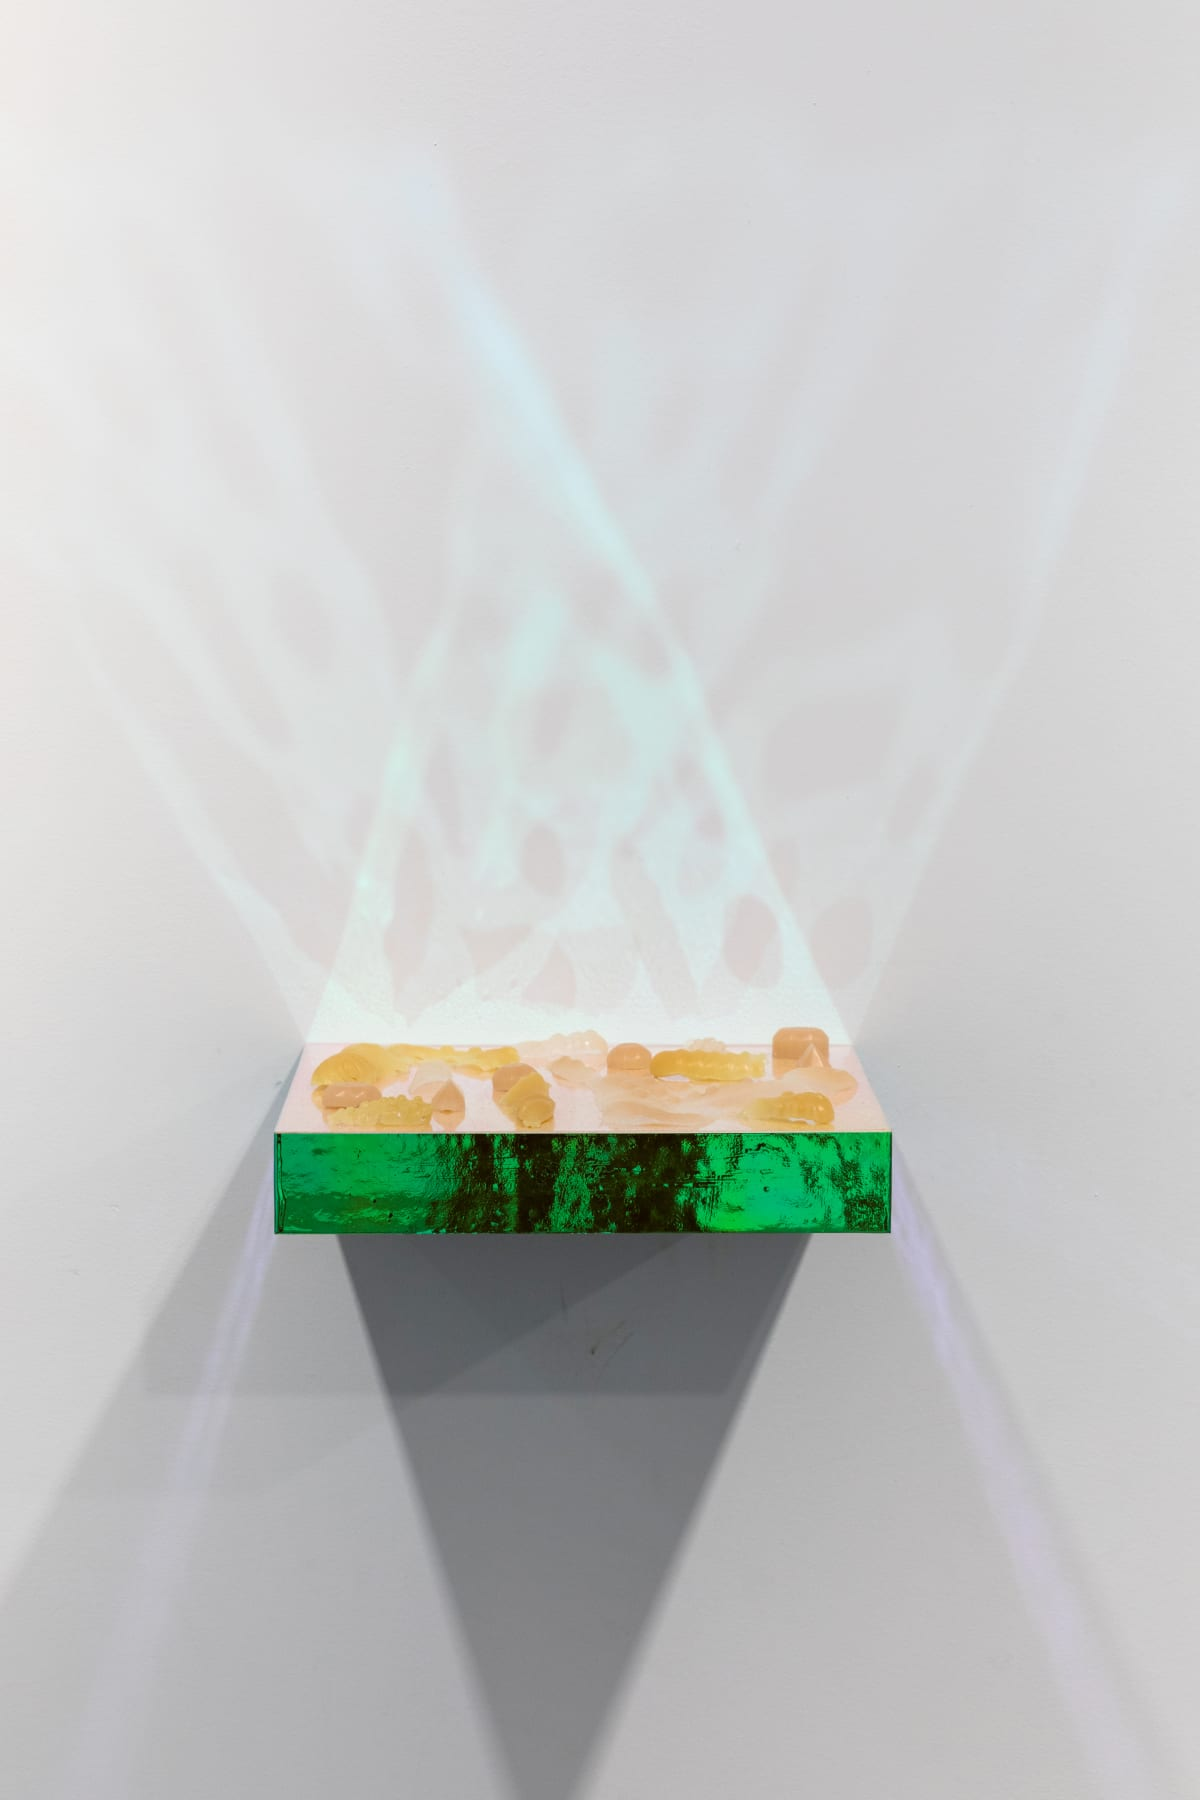 Bahareh Khoshooee MotiveDecay off, 2019 Dragon Skin, Silicone Rubber, iridescent transparency sheet, textured plastic sheet 1 x 12 x 12 in 2.5 x 30.5 x 30.5 cm